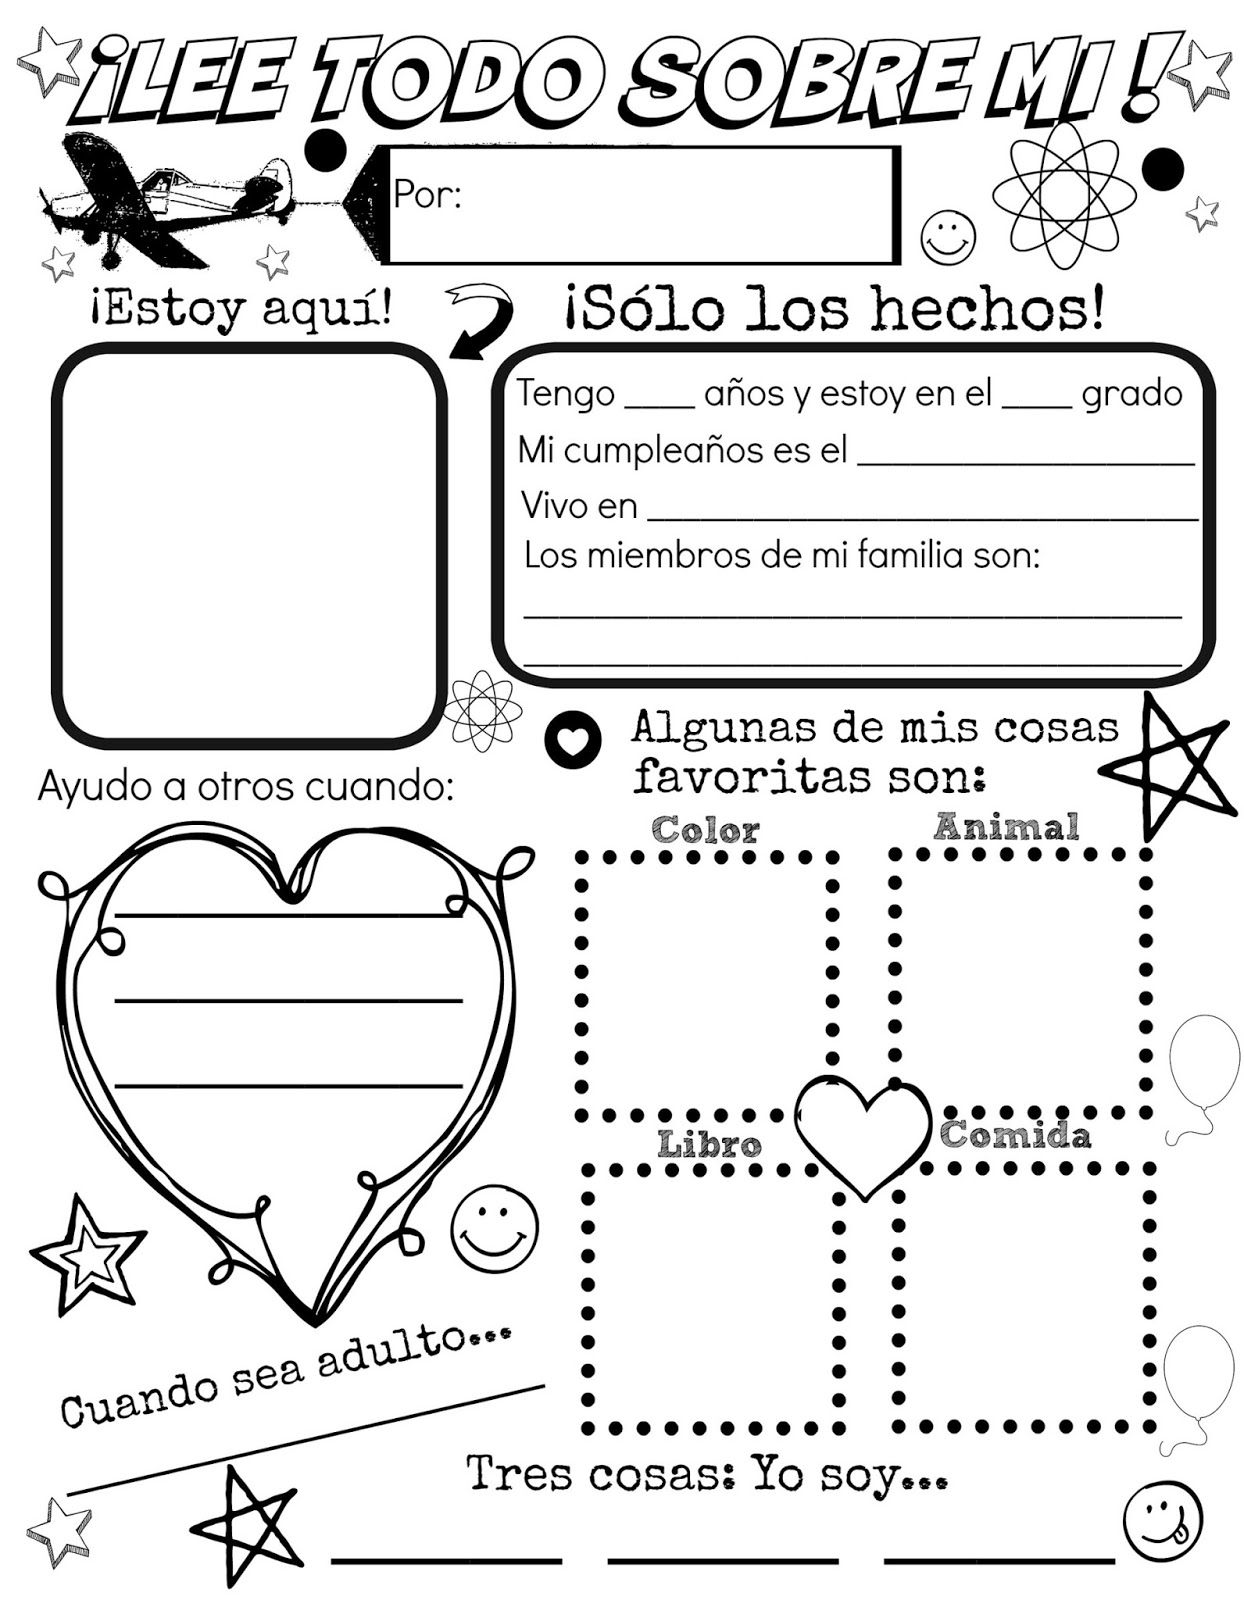 photo about Free Printable All About Me Poster known as All Over Me Totally free Spanish Printable Understanding the